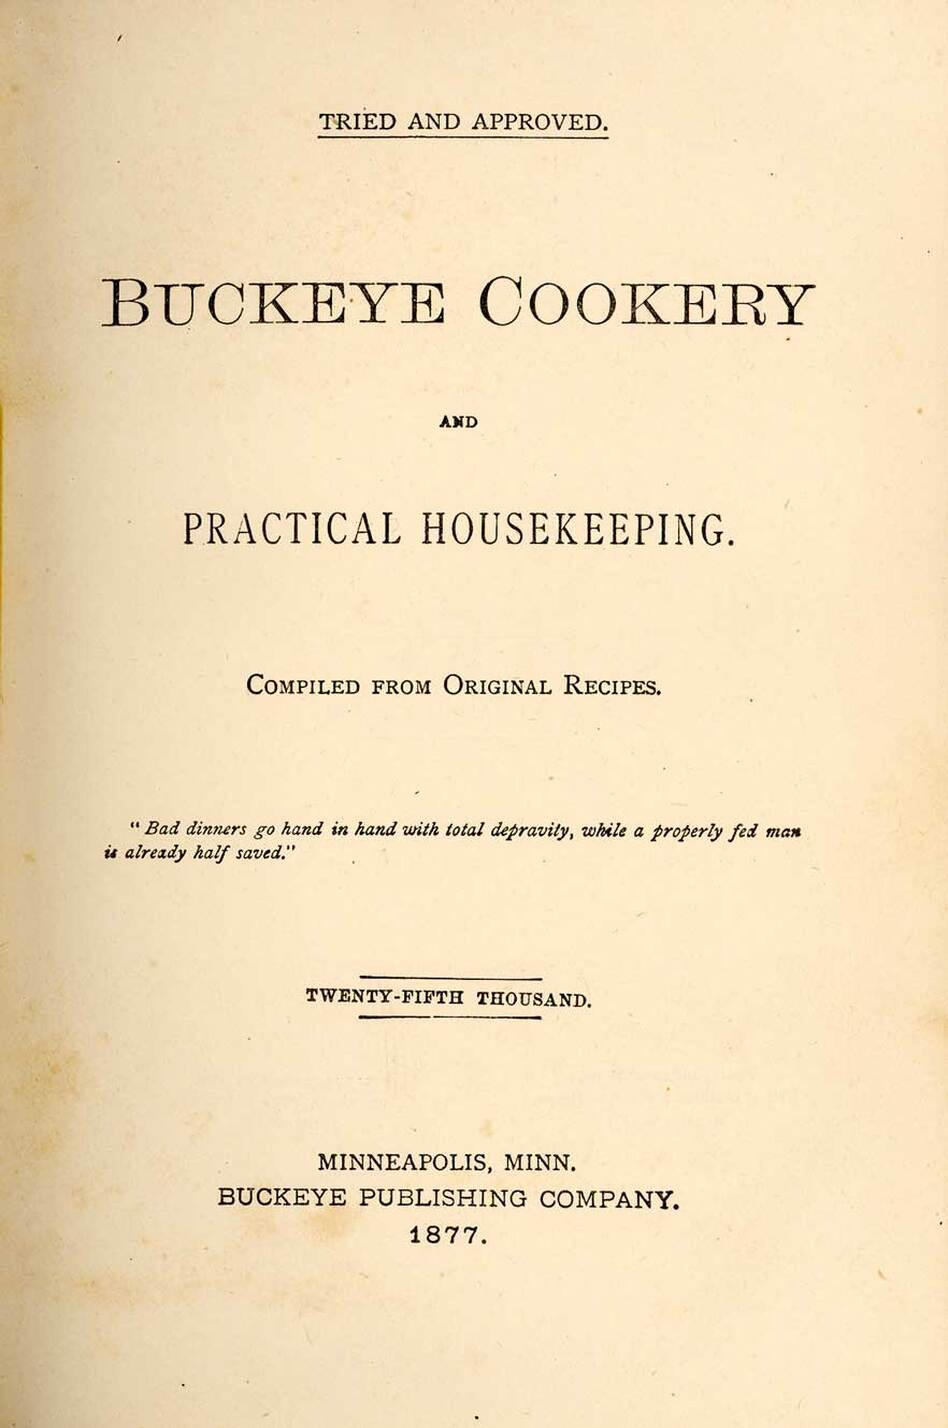 Buckeye Cookery, And Practical Housekeeping: Compiled From Original Recipes. Though it began as a charity cookbook published by the First Congregational Church in Marysville, Ohio in 1876, after more than 80,000 copies 30 printings in multiple languages it became an American classic. (Michigan State University Libraries)